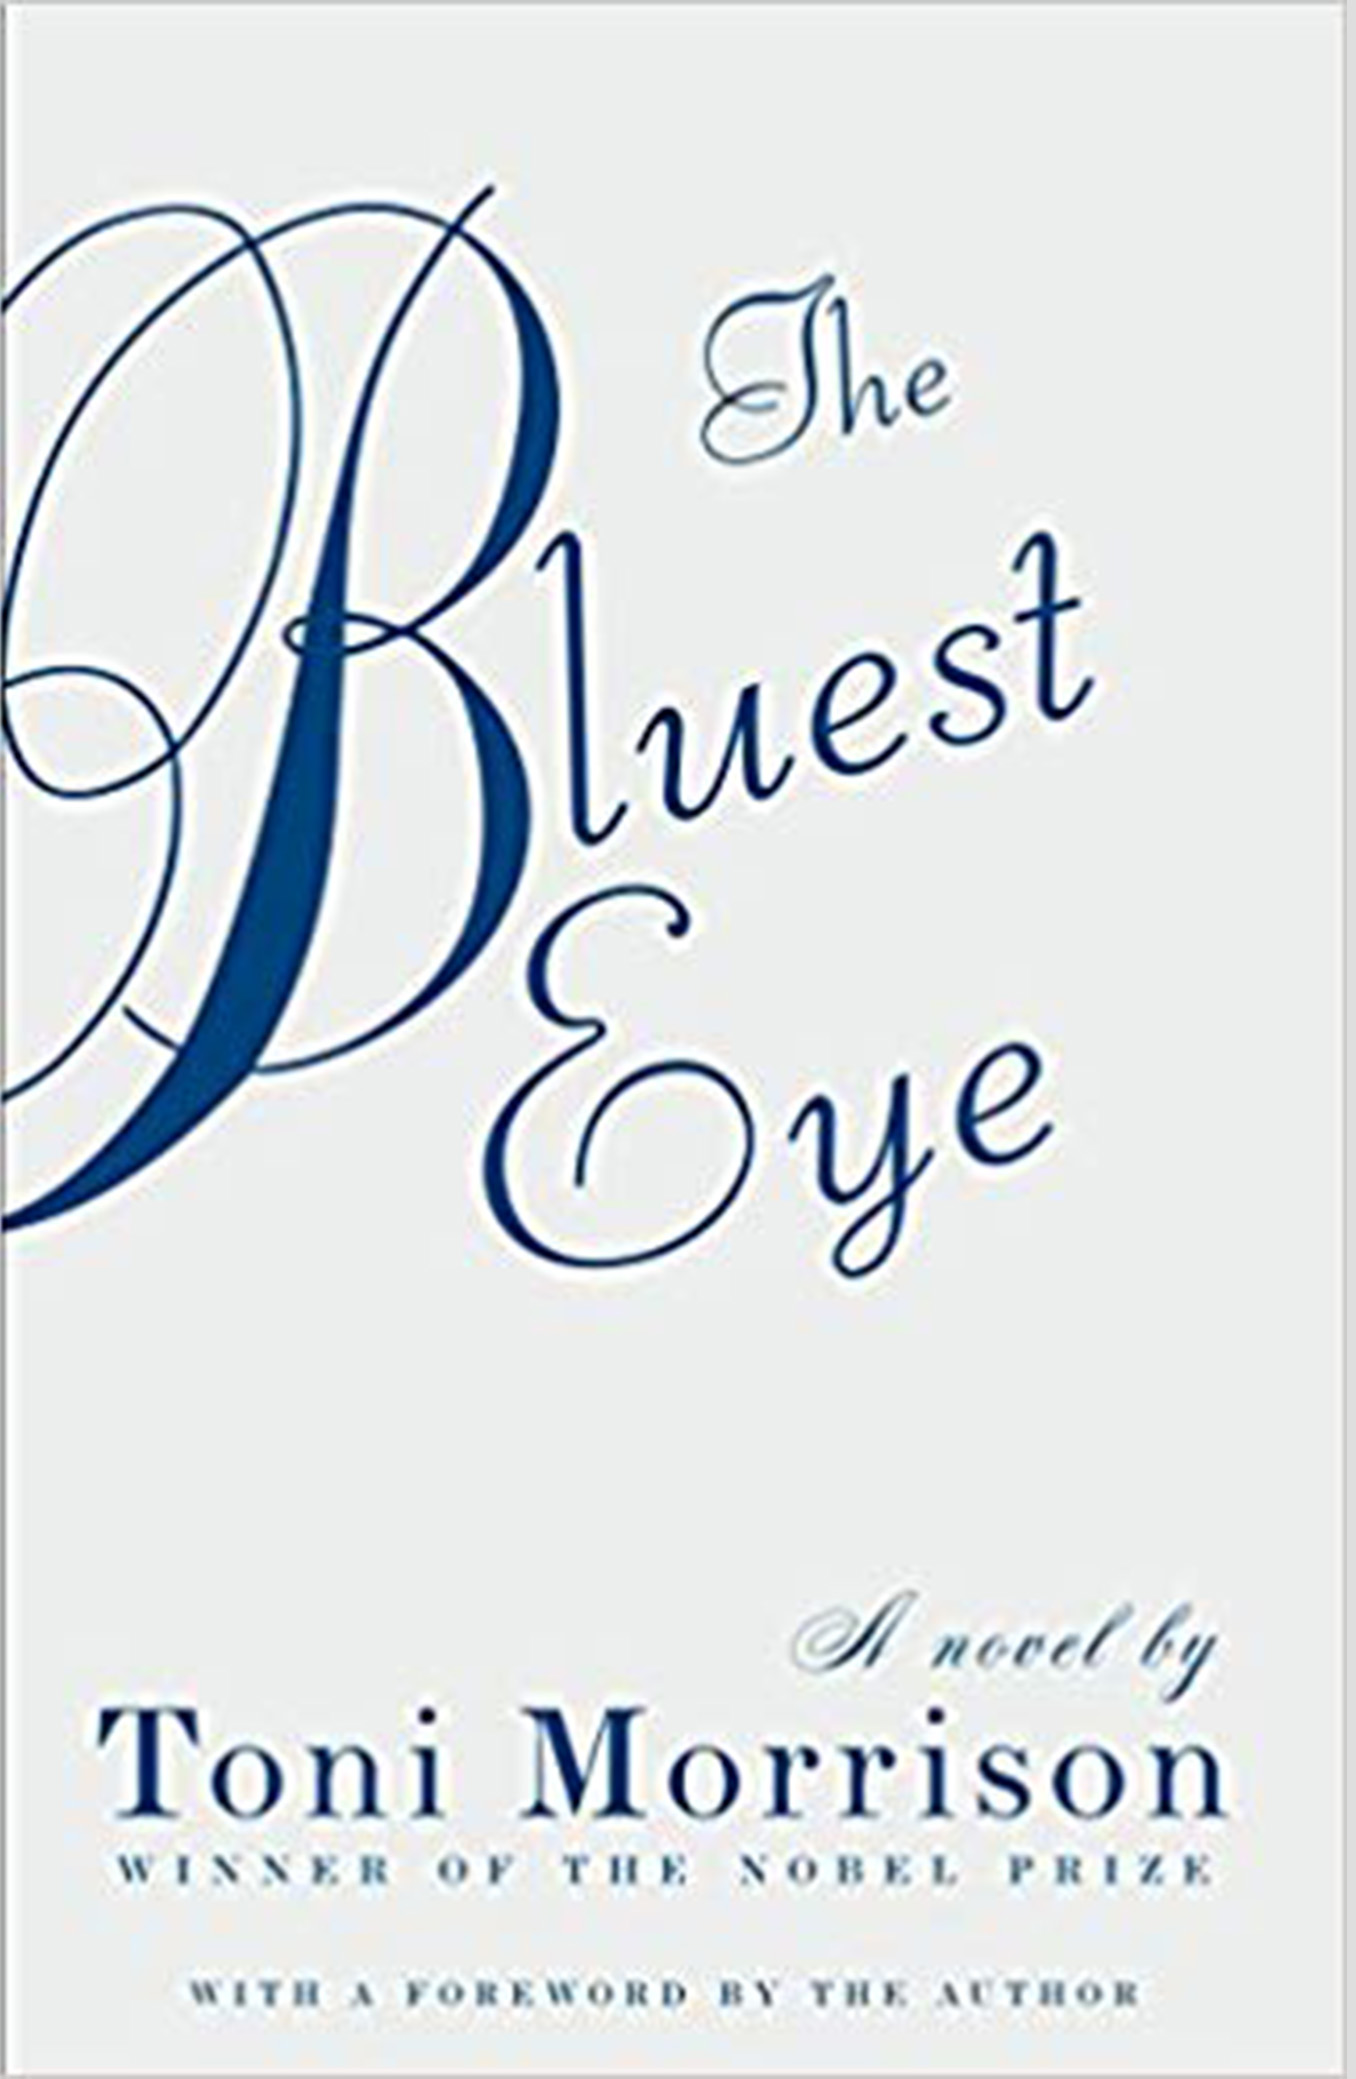 The Bluest Eye - by Toni Morrison